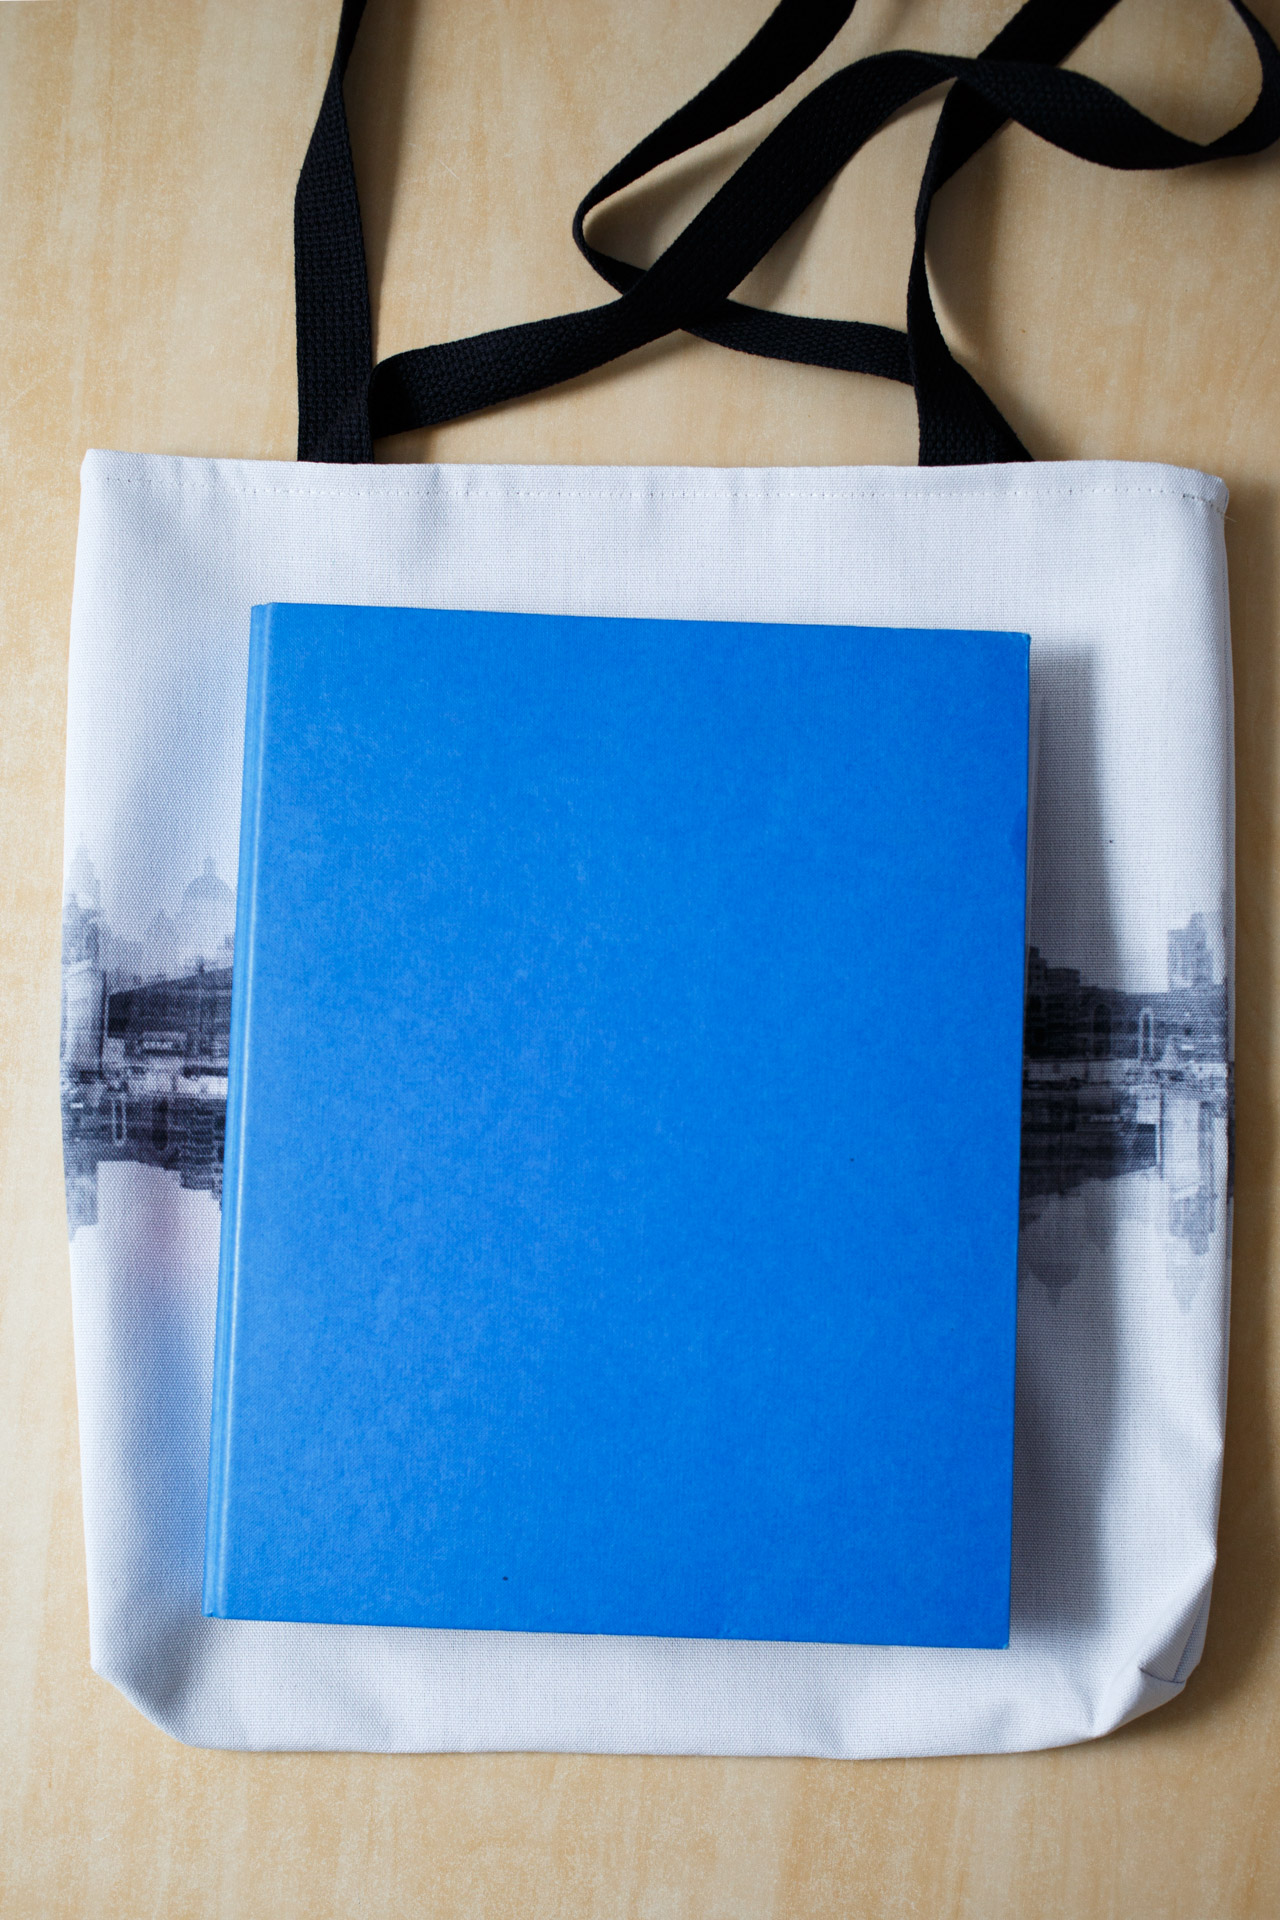 An A4 folder placed on top of the bag to give you an idea of size.